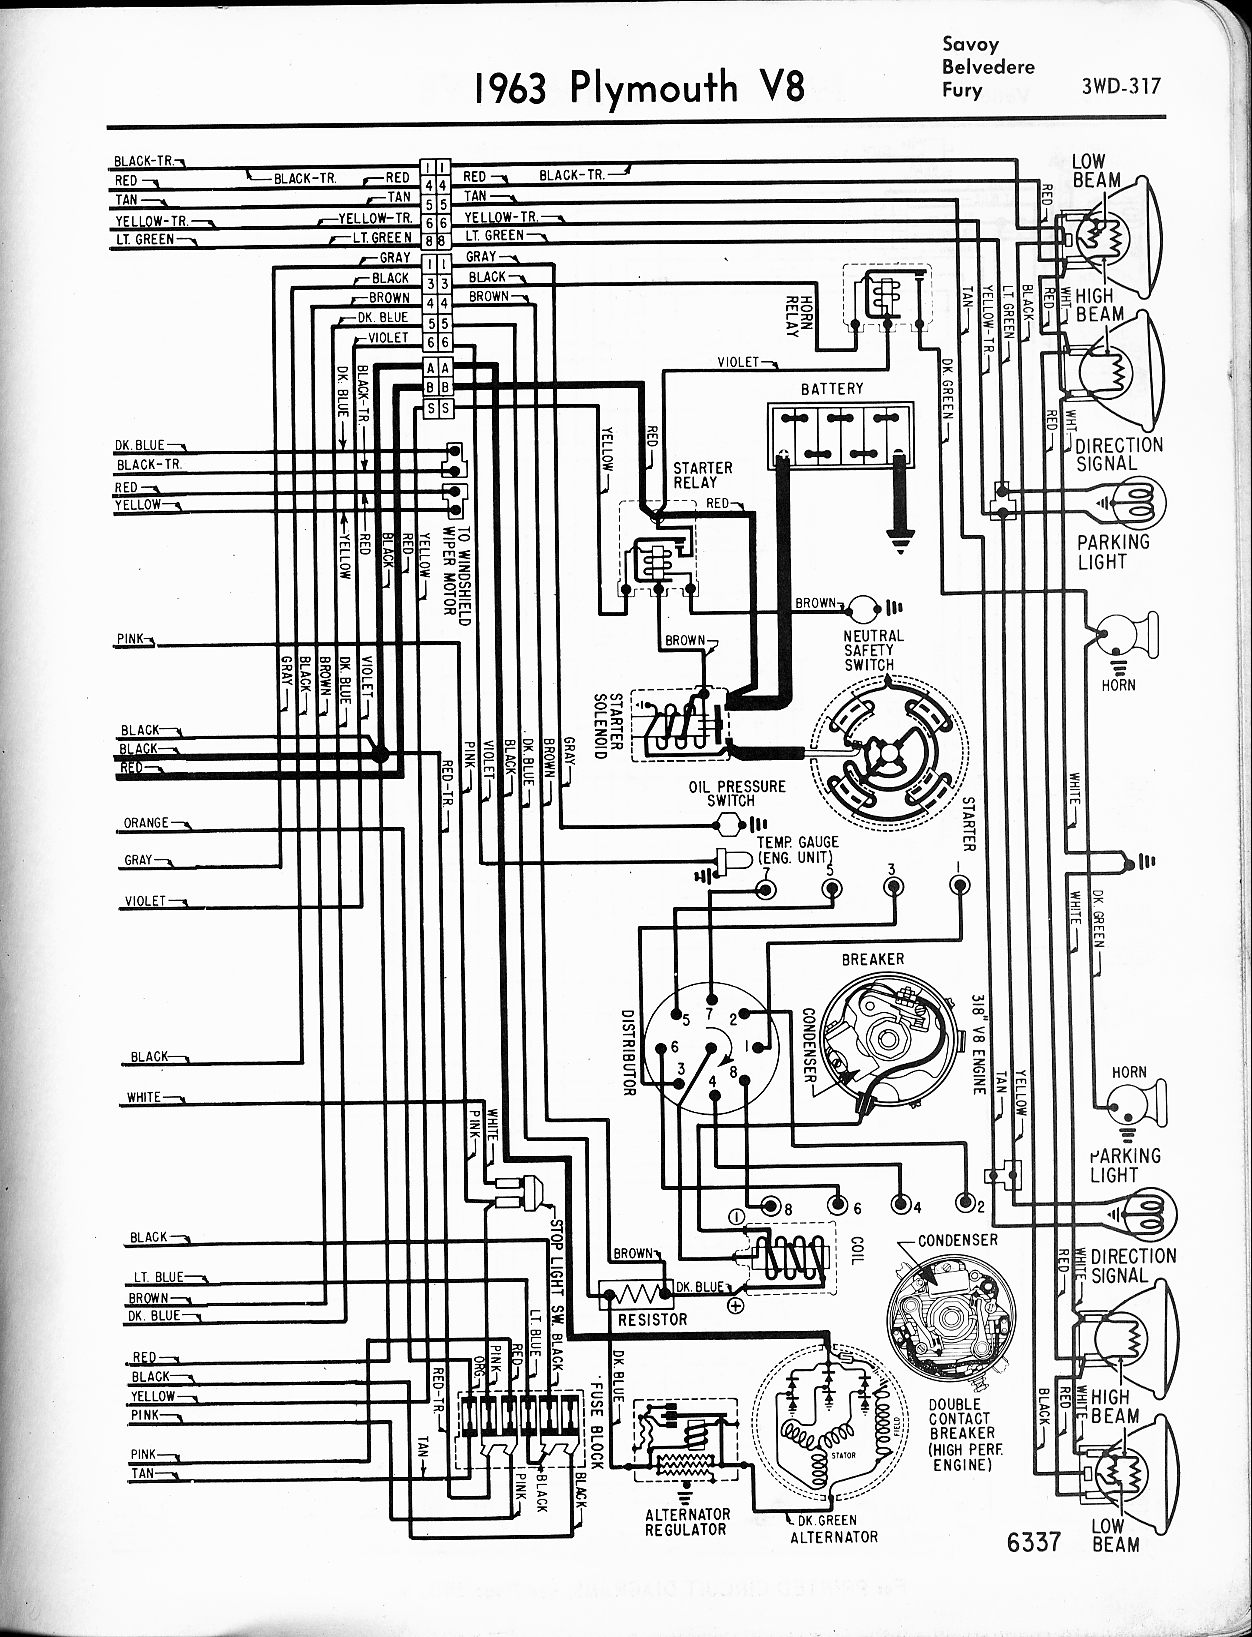 MWire5765 317 diagrams 8001049 rover mini cooper auto electrical wiring 64 valiant wiring diagram at bayanpartner.co